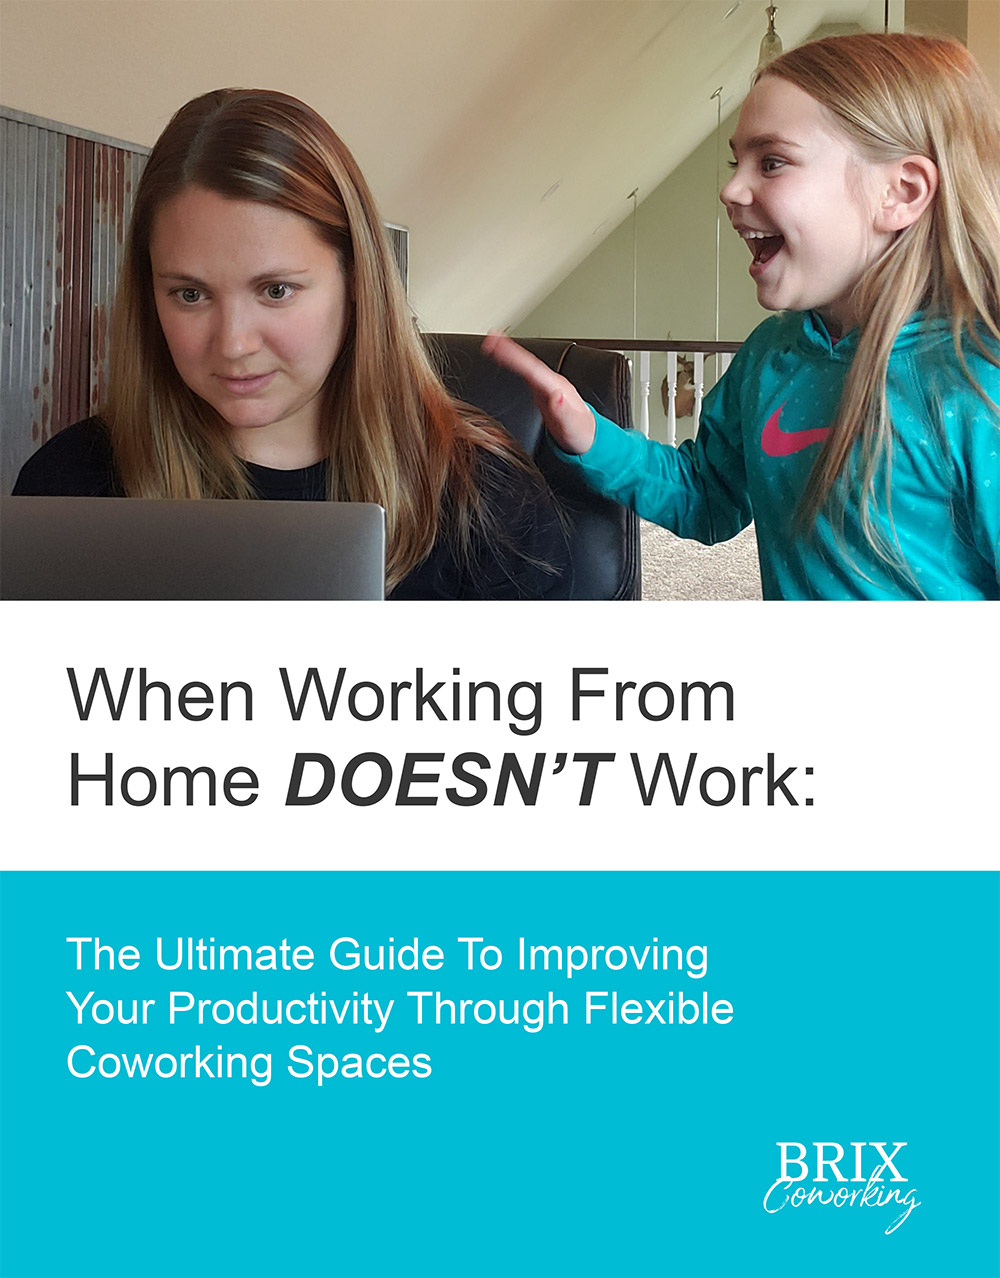 When Working From Home DOESN'T WORK: The Ultimate Guide to Improving Your Productivity Through Flexible Coworking Spaces